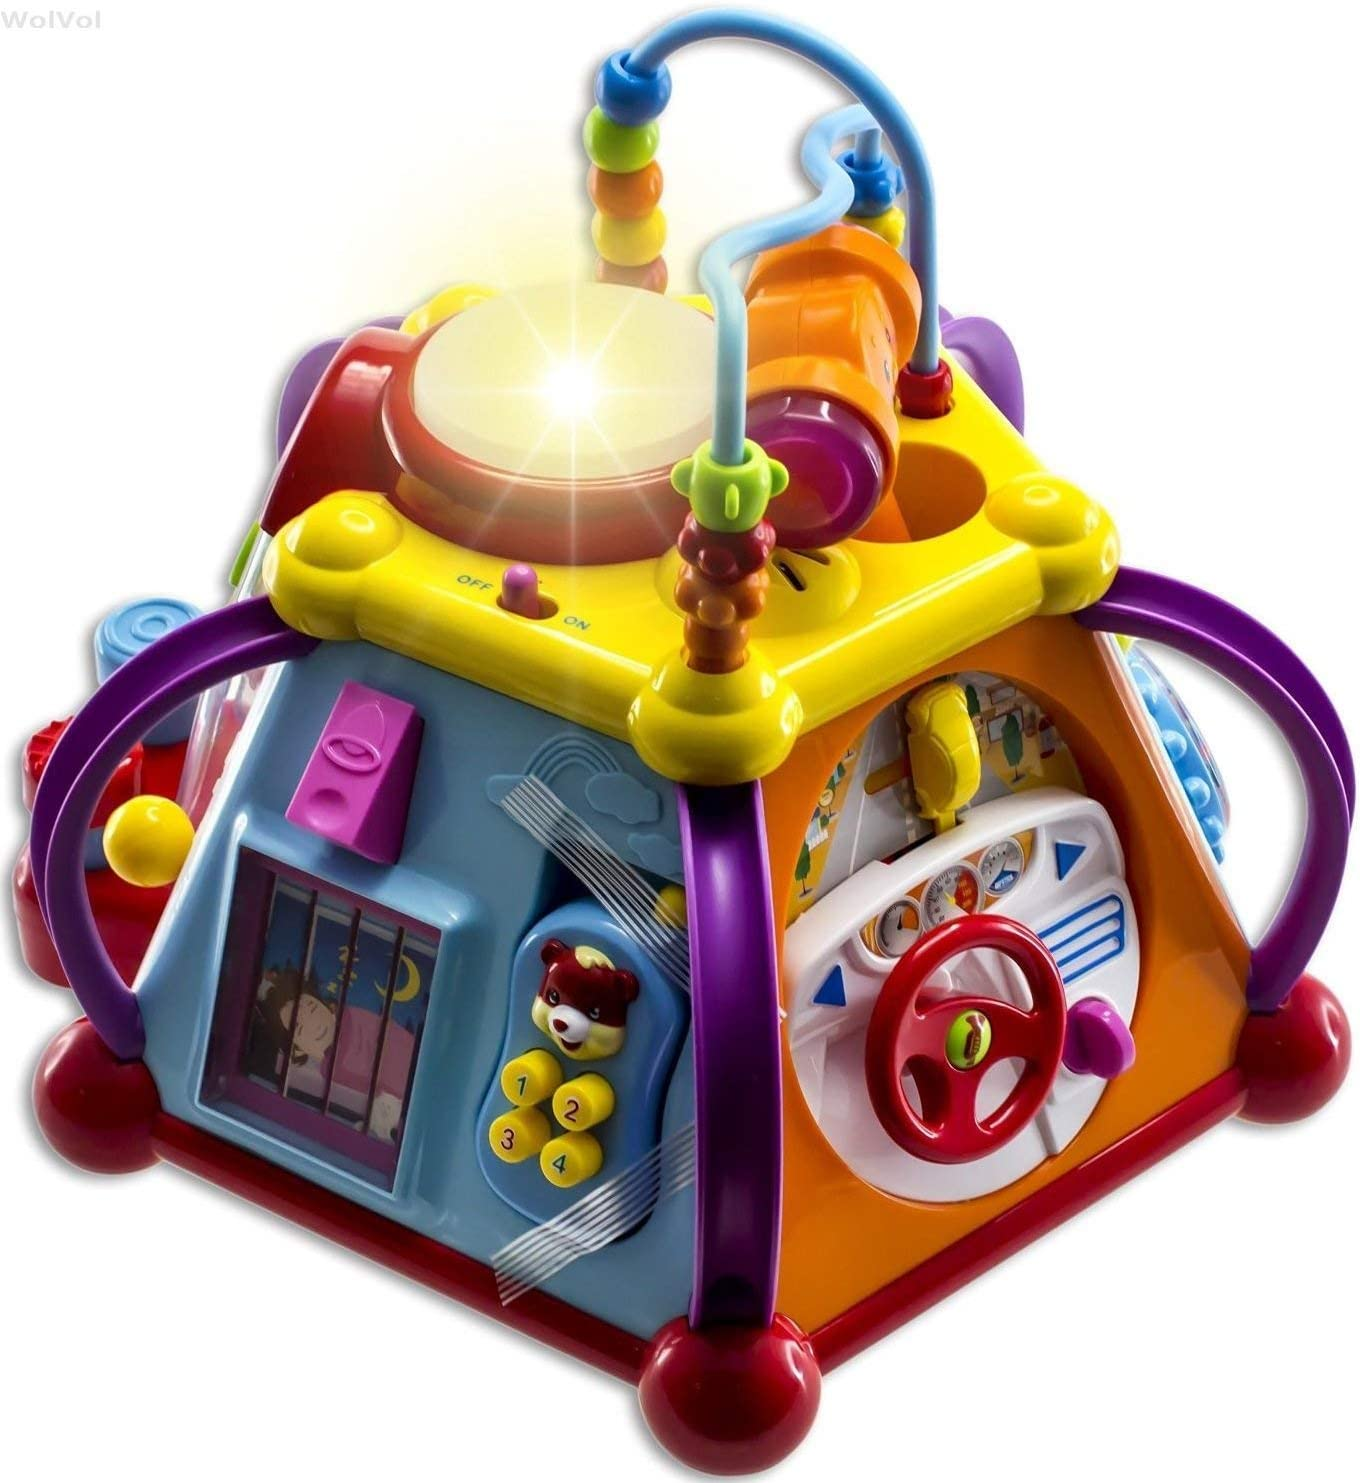 WolVolk Educational Outlet sale feature Kids Toddler Baby Cube Toy Musical Activity Long Beach Mall